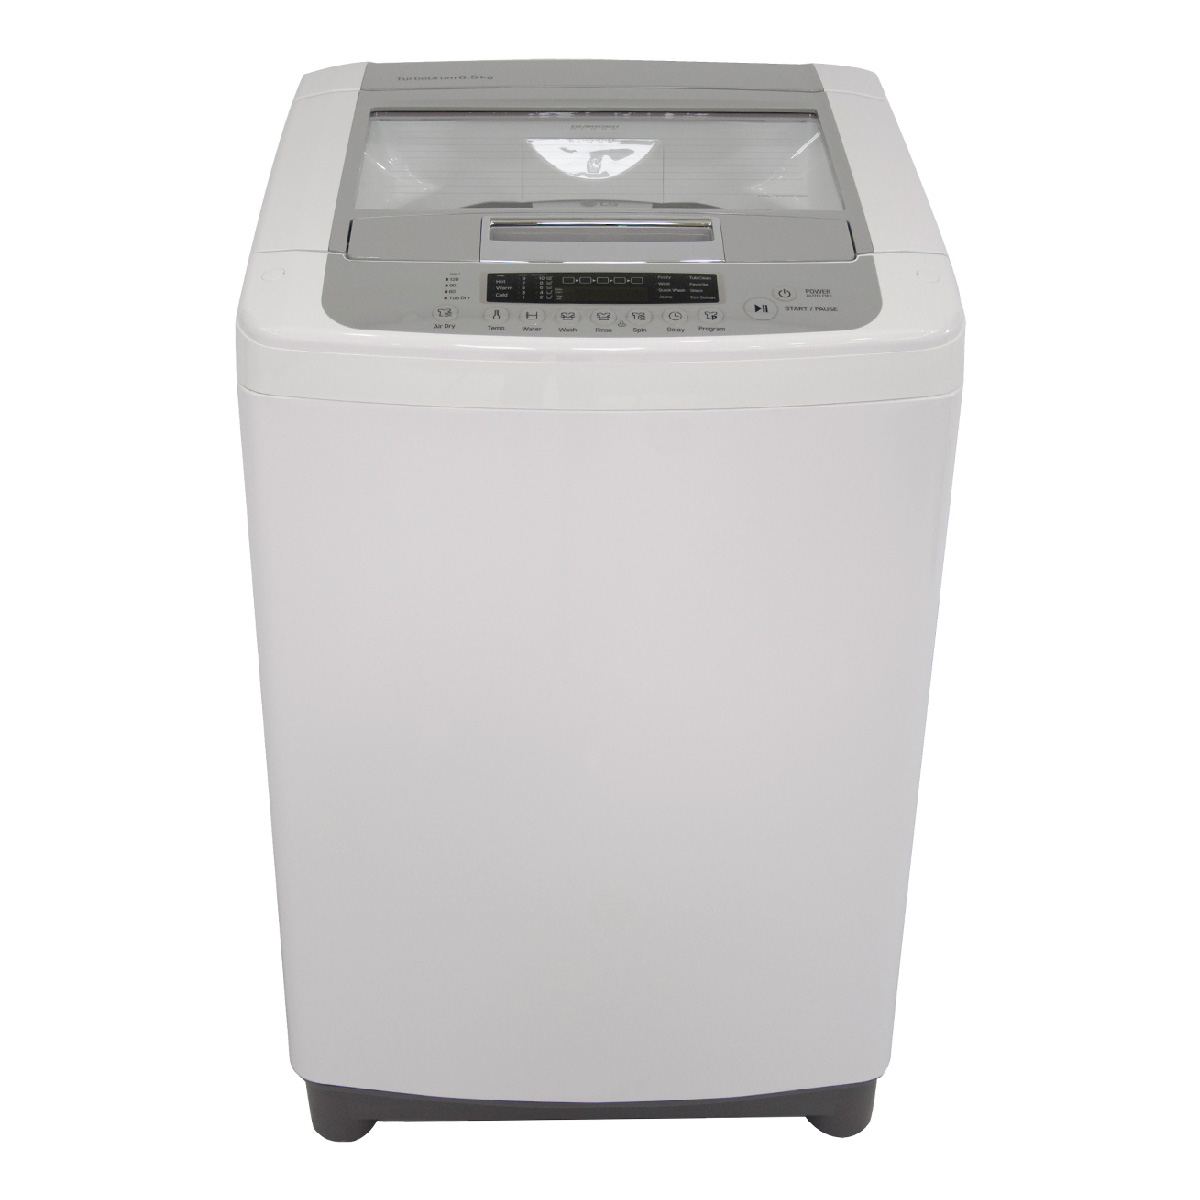 LG WF-T6572 6.5kg Top Load Washing Machine